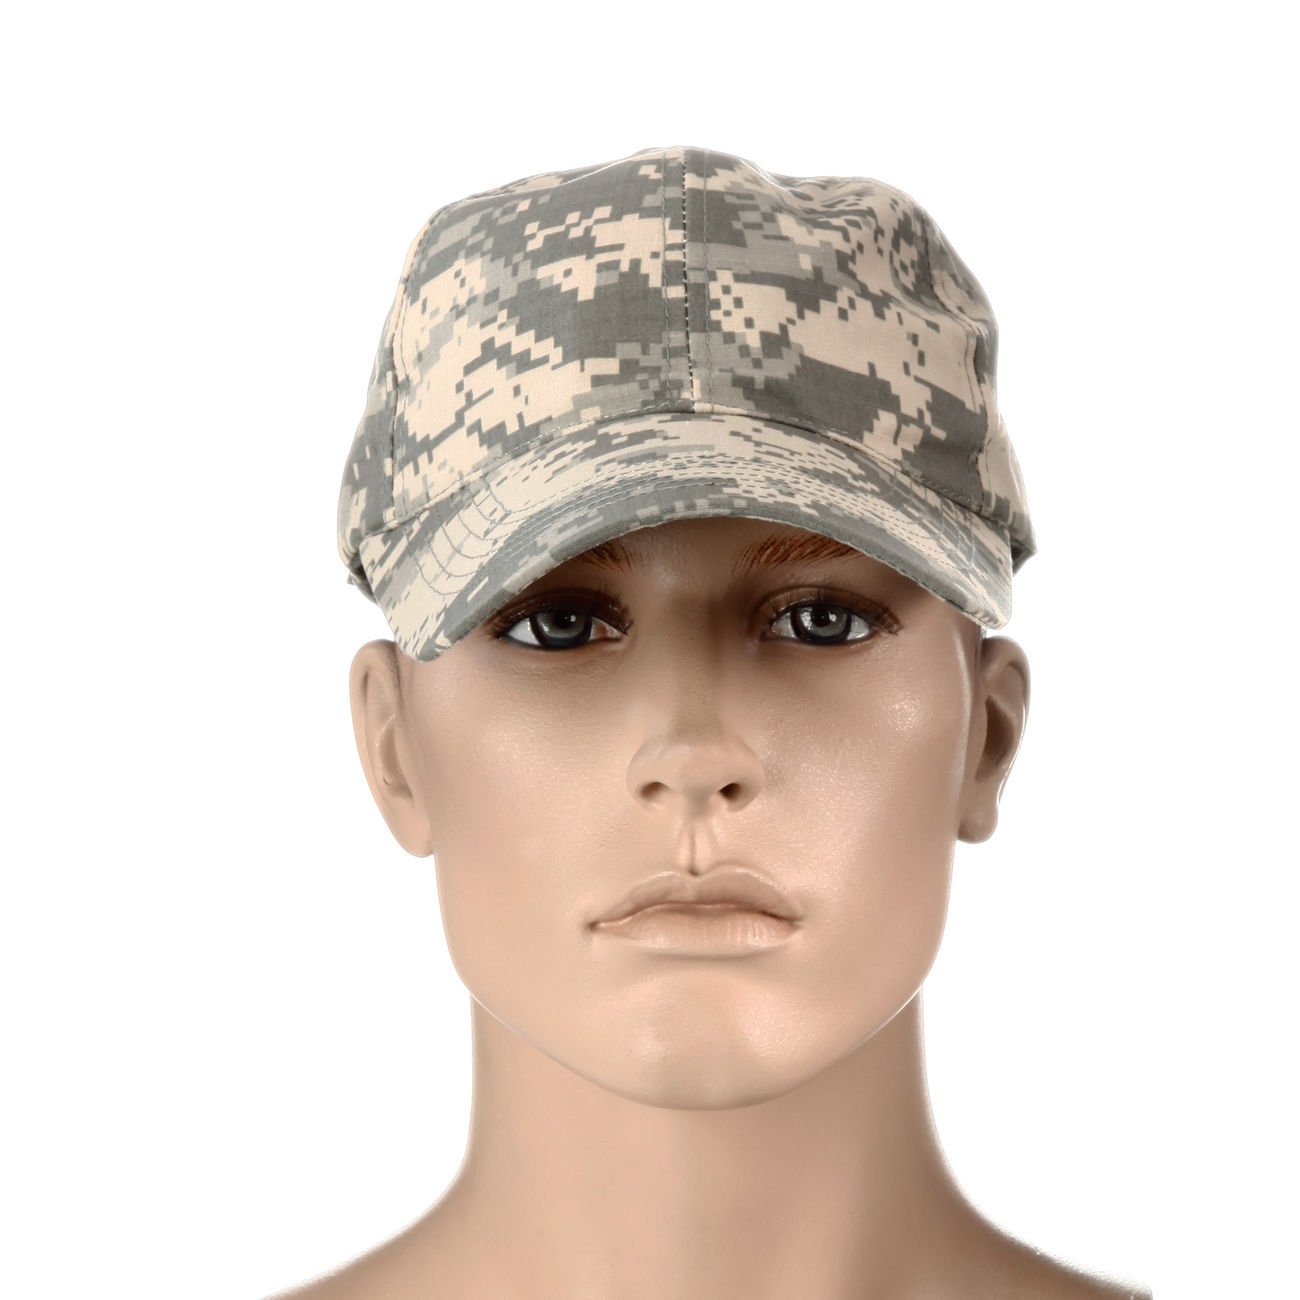 Mil-Tec Baseball Cap Ripstop AT-Digital 1